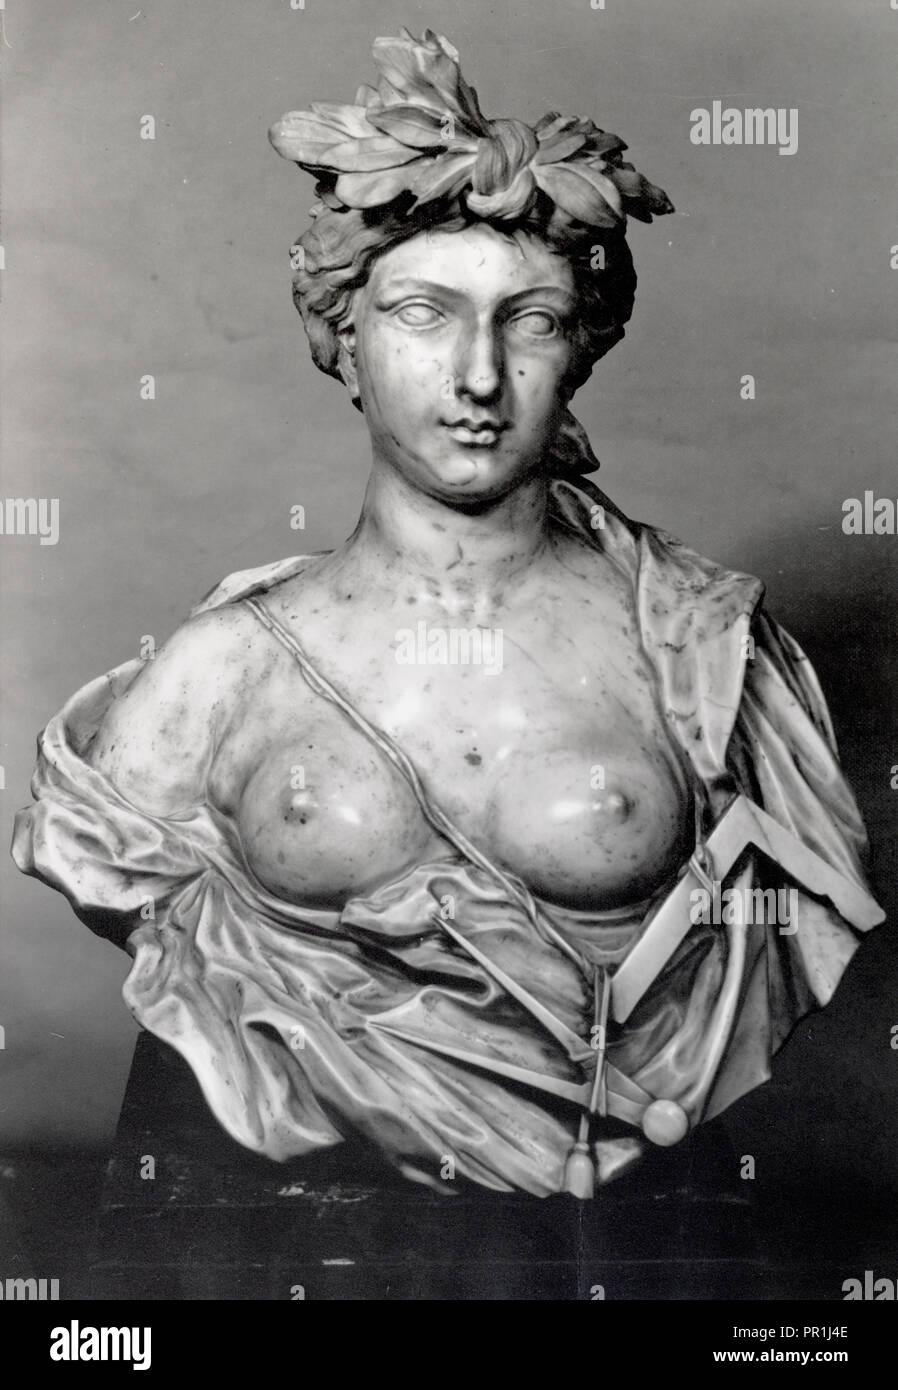 17th century marble bust School of Bernini, The French and Company photographic archive of fine and decorative arts, Gelatin - Stock Image